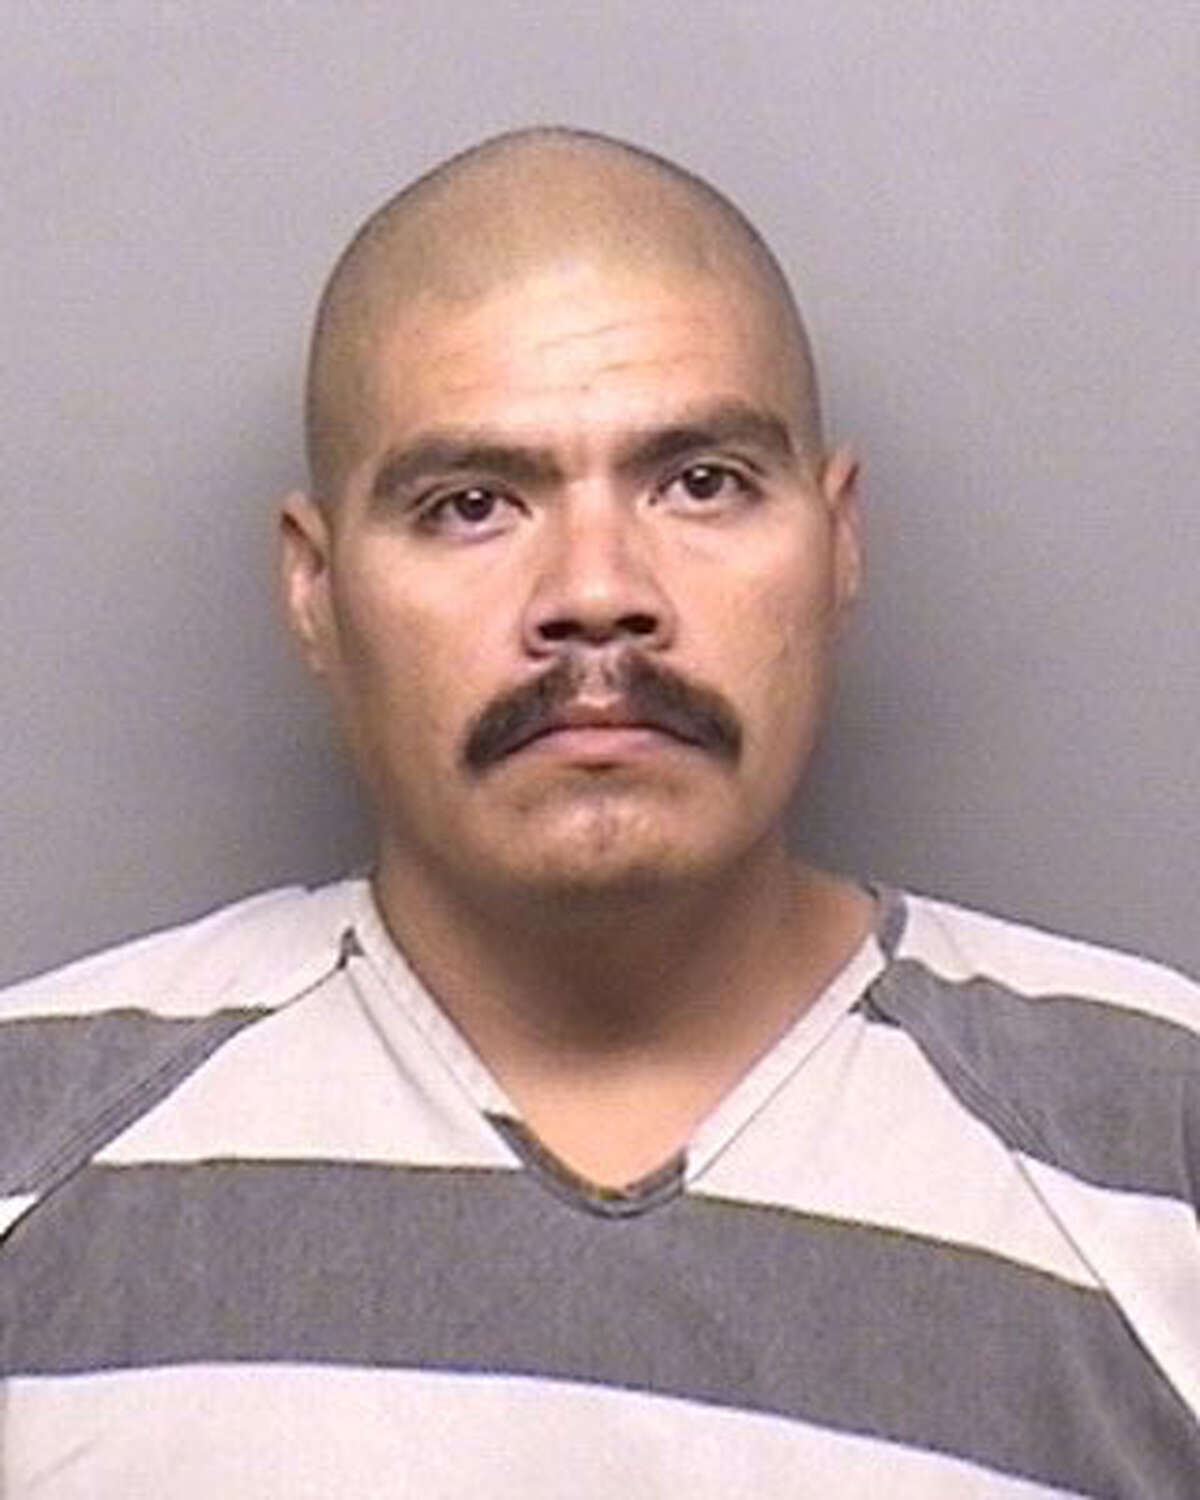 Mario Homero Flores was charged with transport, attempt to transport and conspire immigrants who had entered the country illegally.